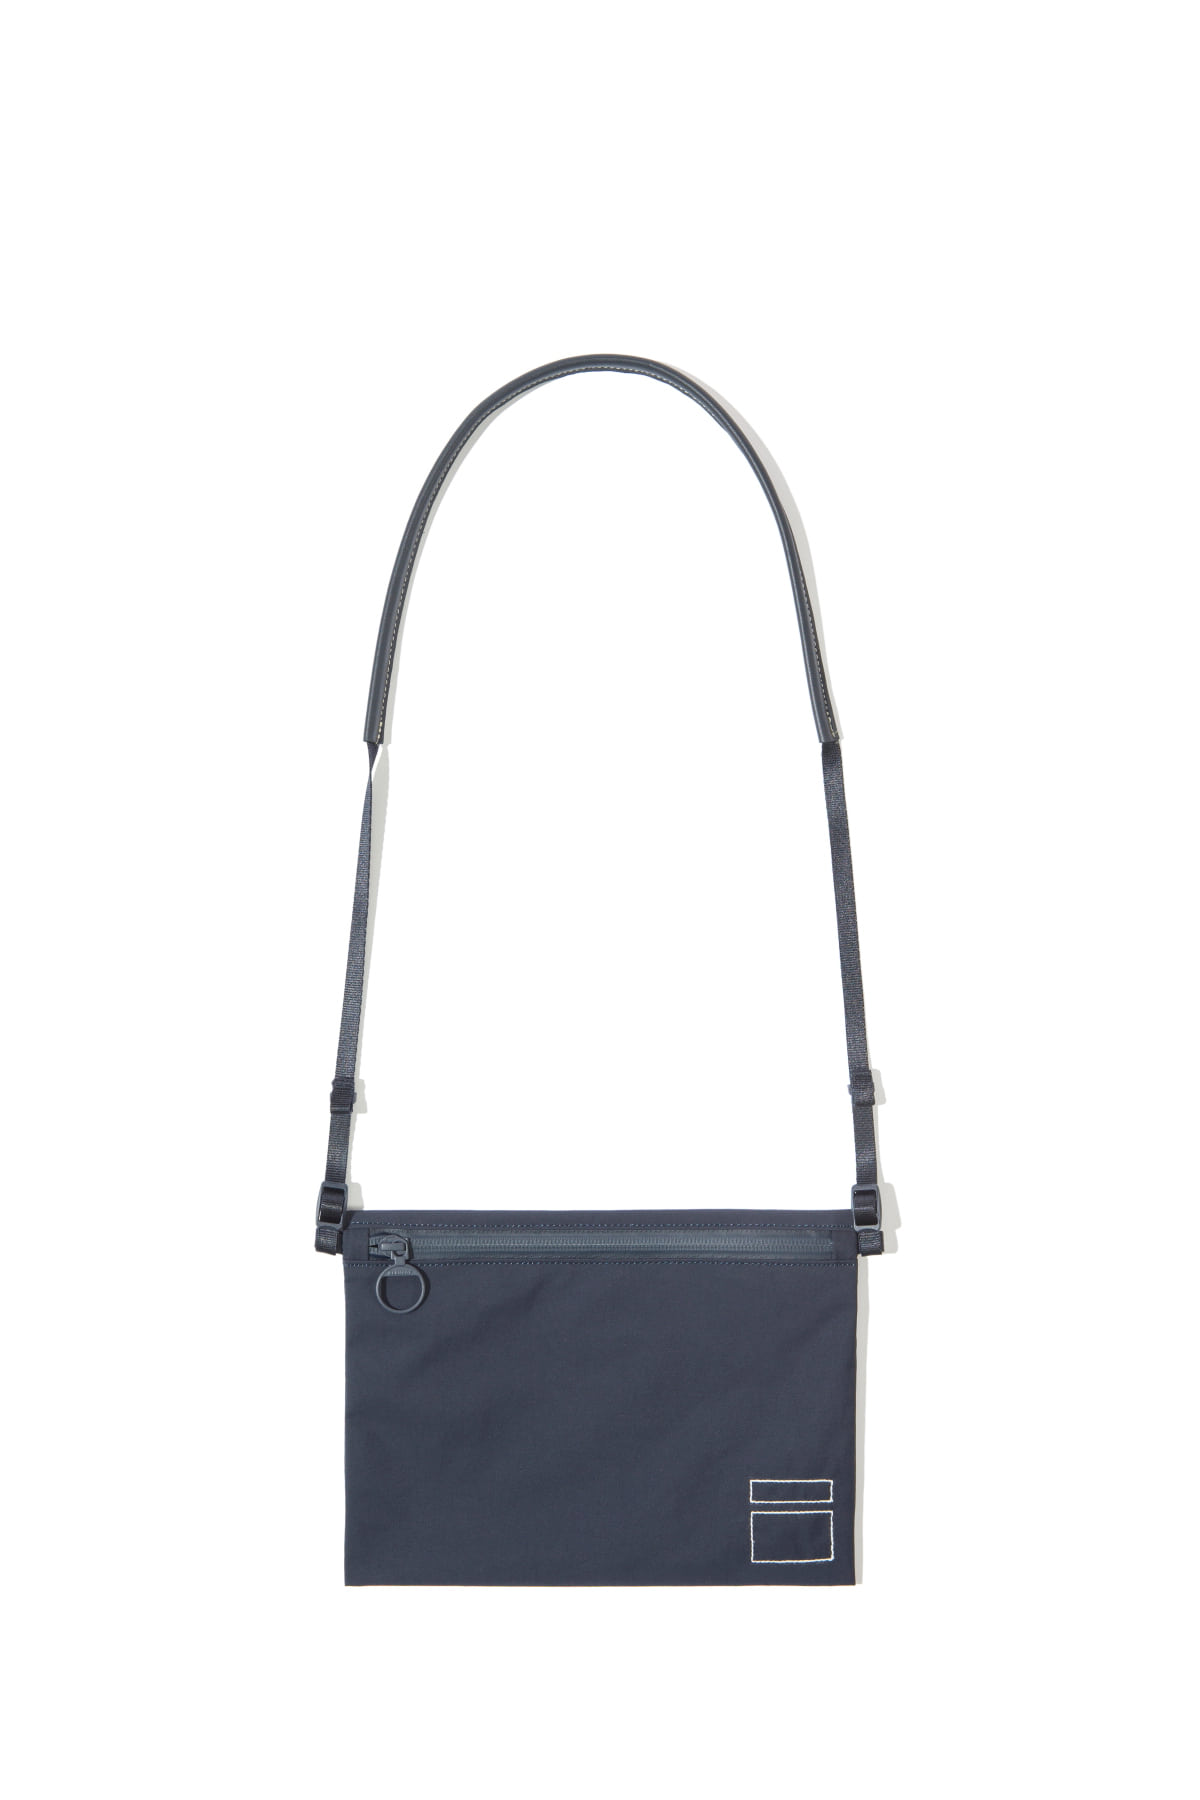 Blankof : BLG 01 12IN Sacoche Bag 12 (Navy)